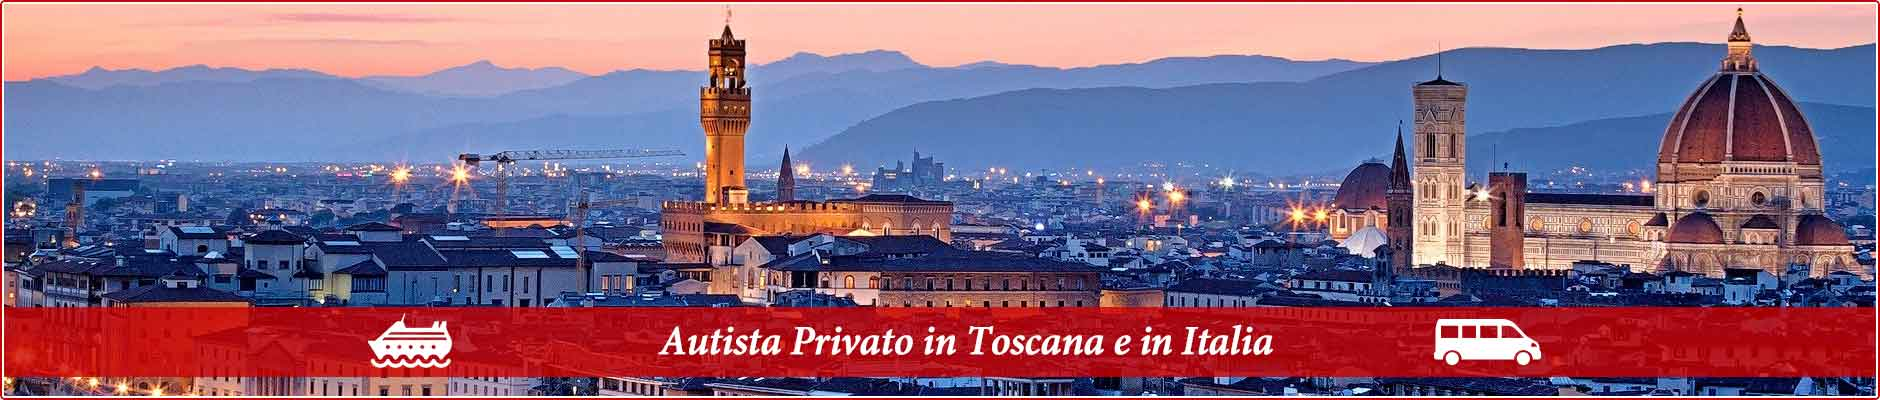 Cruise Shore Excursions In Italy